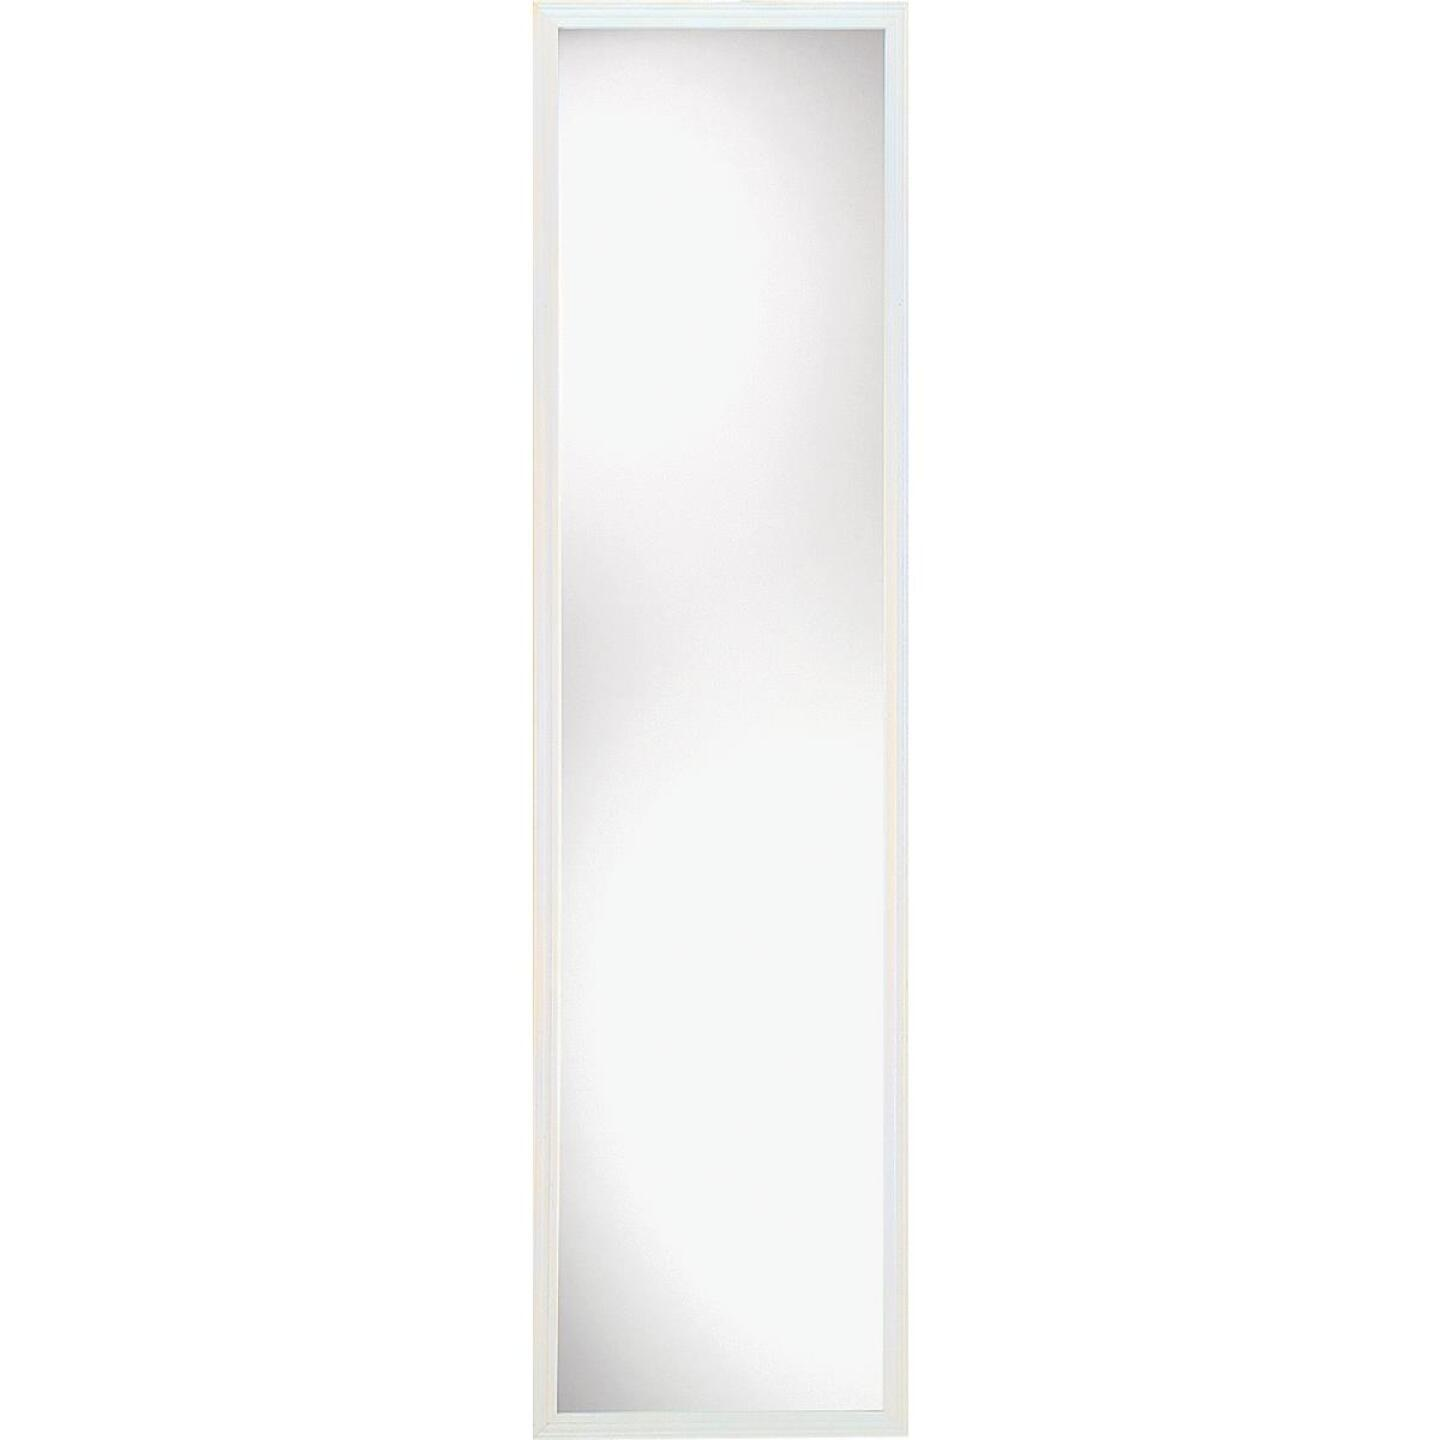 Home Decor Innovations Suave 13 In. x 49 In. White Plastic Door Mirror Image 1